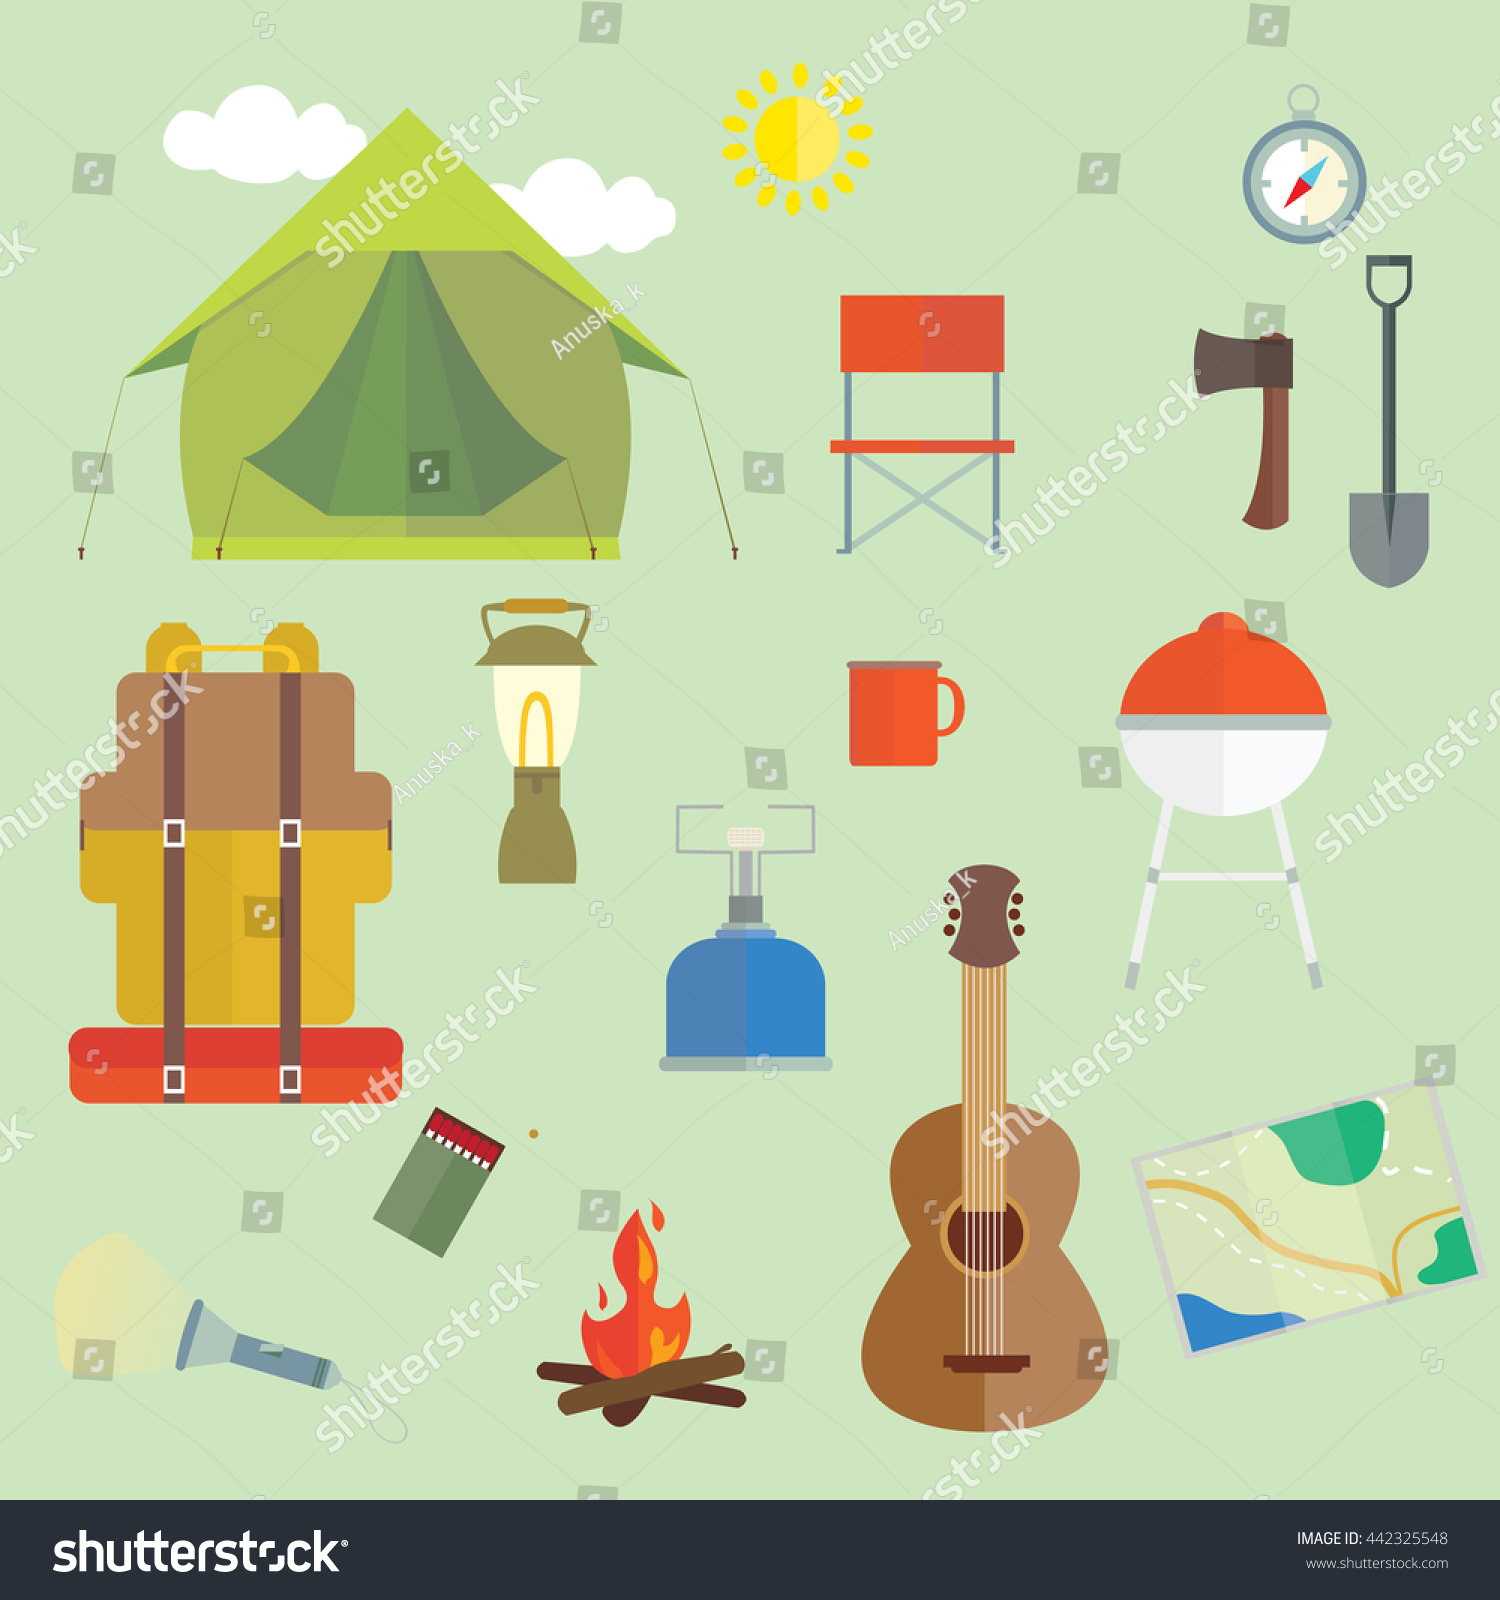 Set Camping Outdoors Hiking Essentials vector Images Stock Vector ...